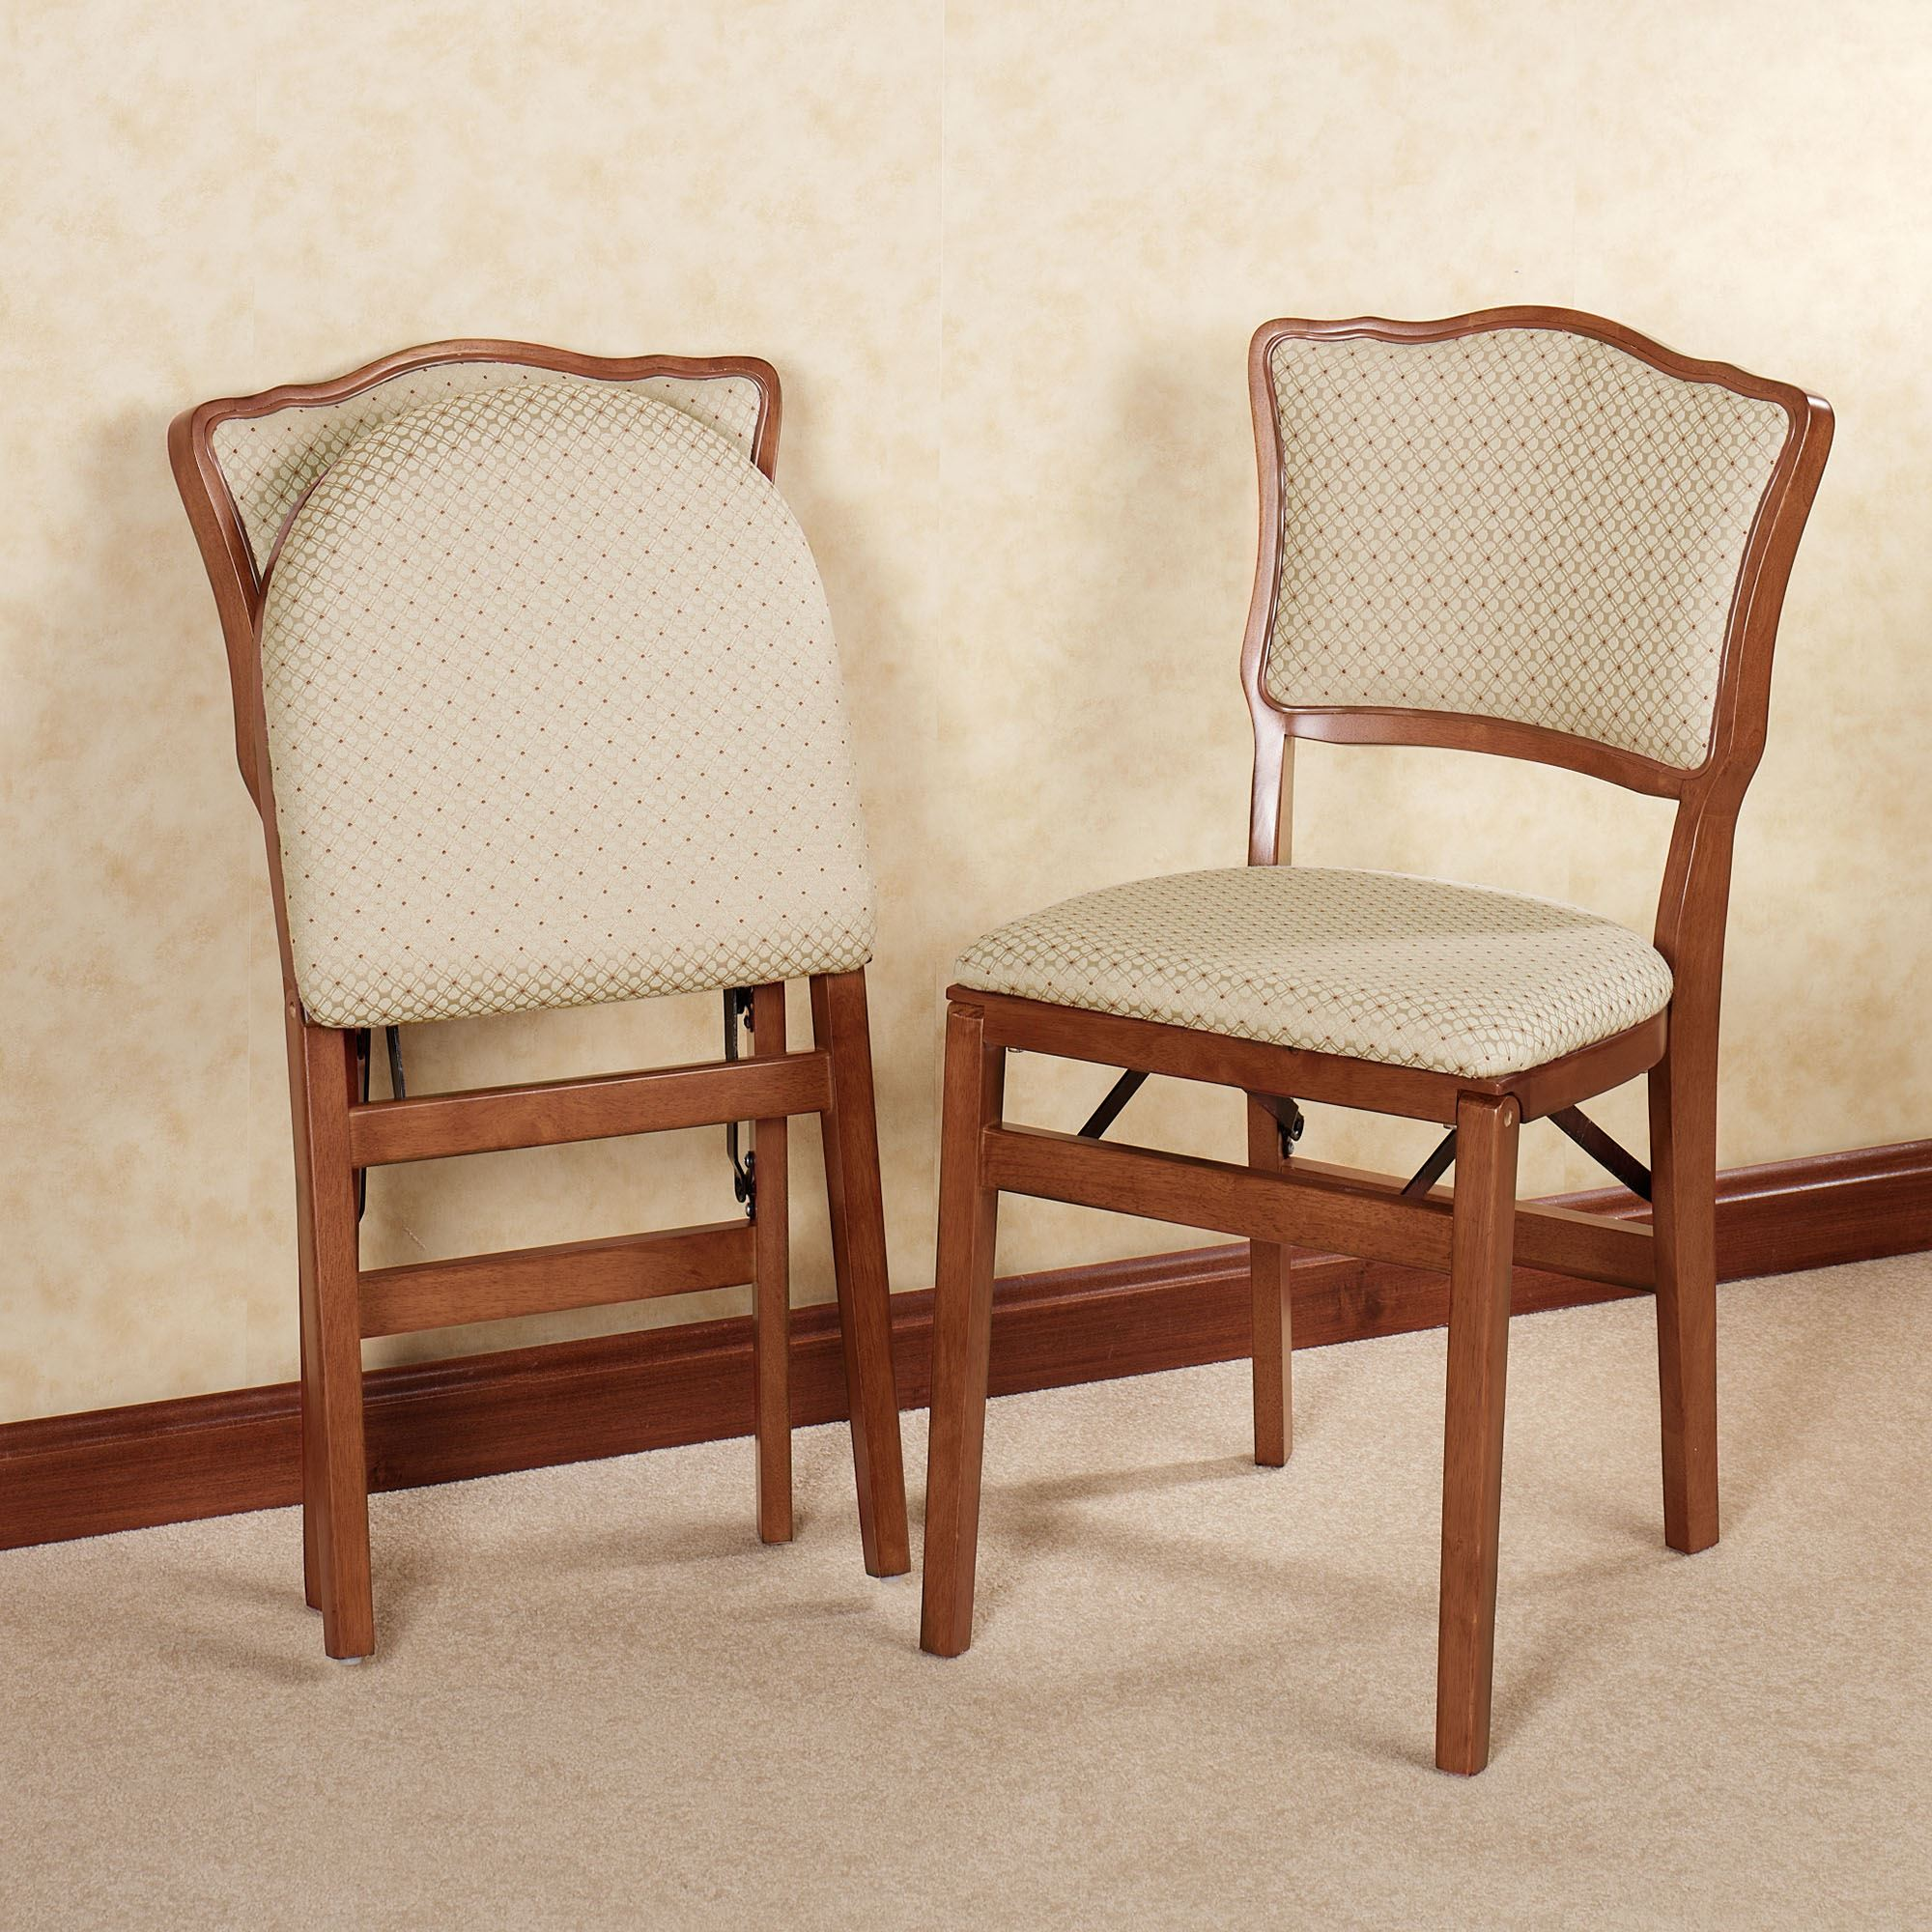 Charmant You Might Also Consider. Dover Cane Folding Chair ...